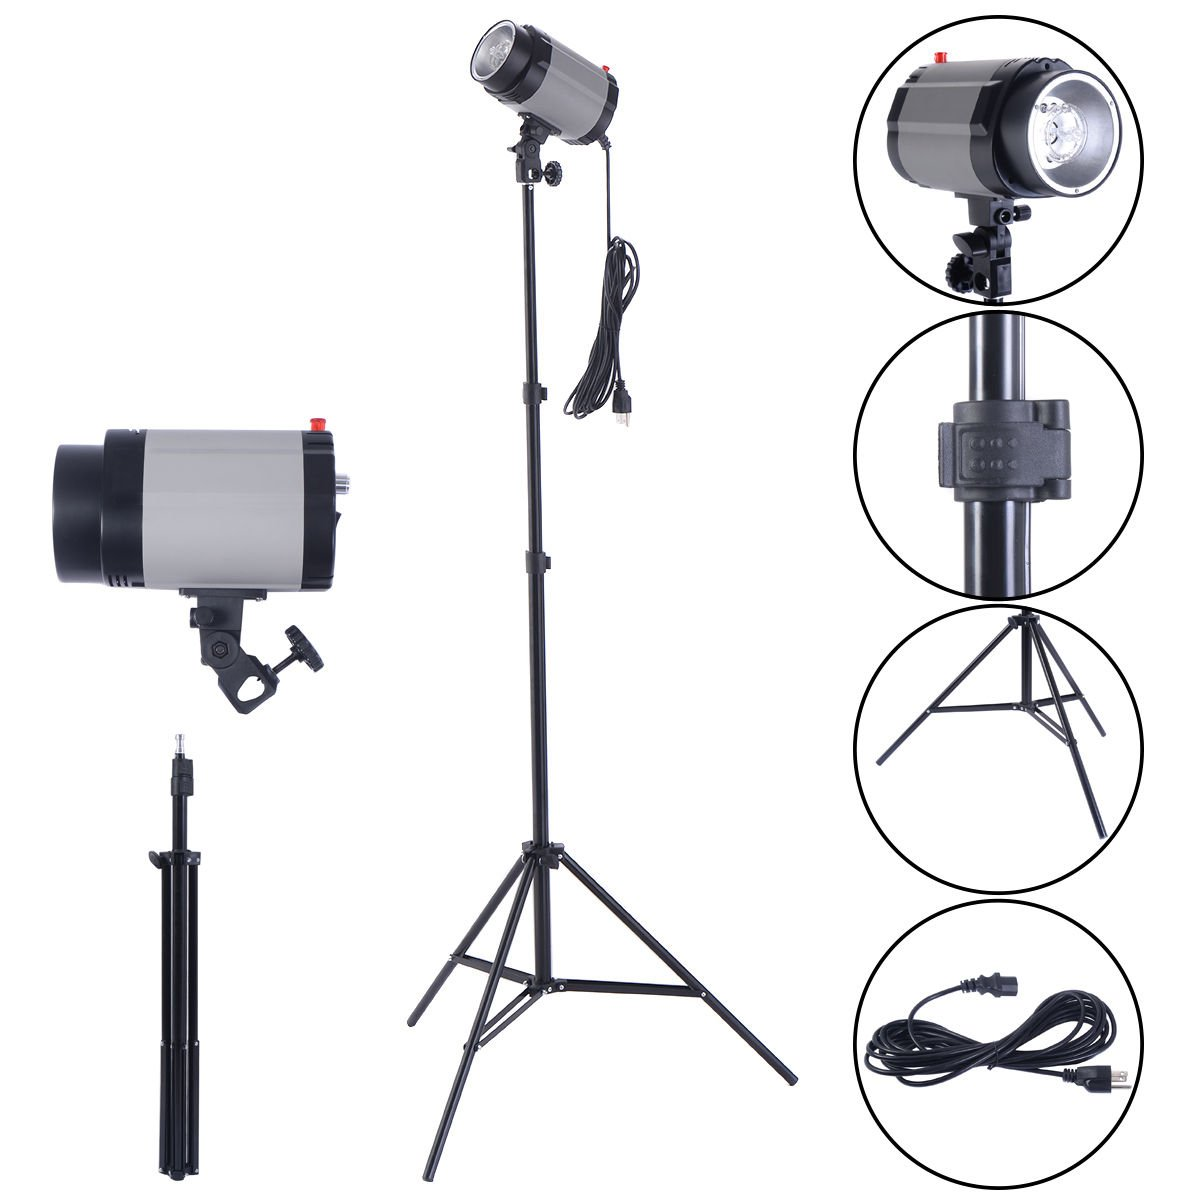 Safstar 320W(160W x 2) 5800K Photography Studio Strobe Flash Lighting Kit for Portrait Product Photography Studio Video Shoots with Stand and Carrying Bag (Set of 2)